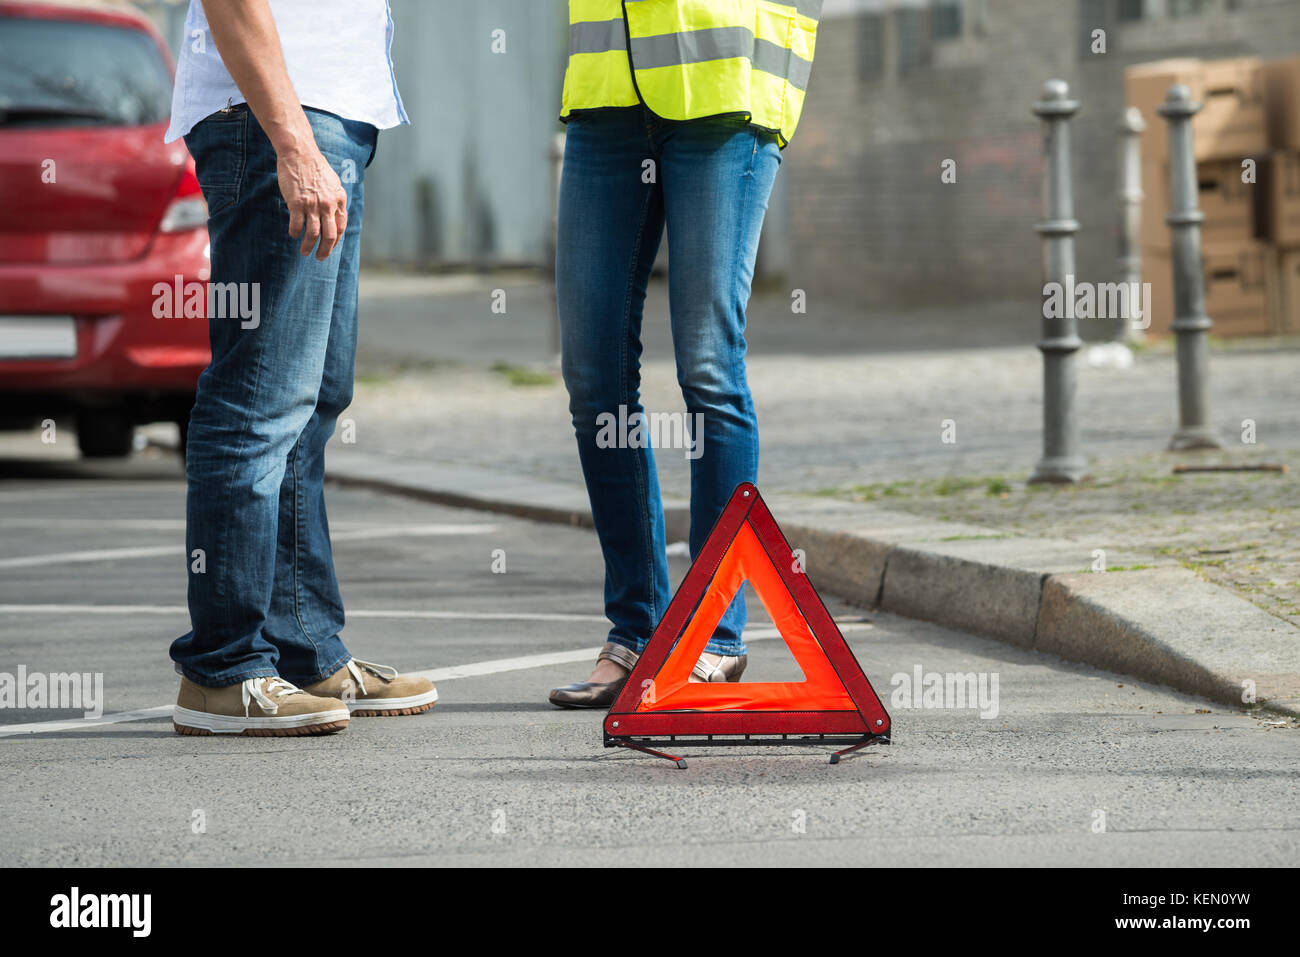 Couple Standing Near Triangular Warning Sign With Broken Down Car - Stock Image